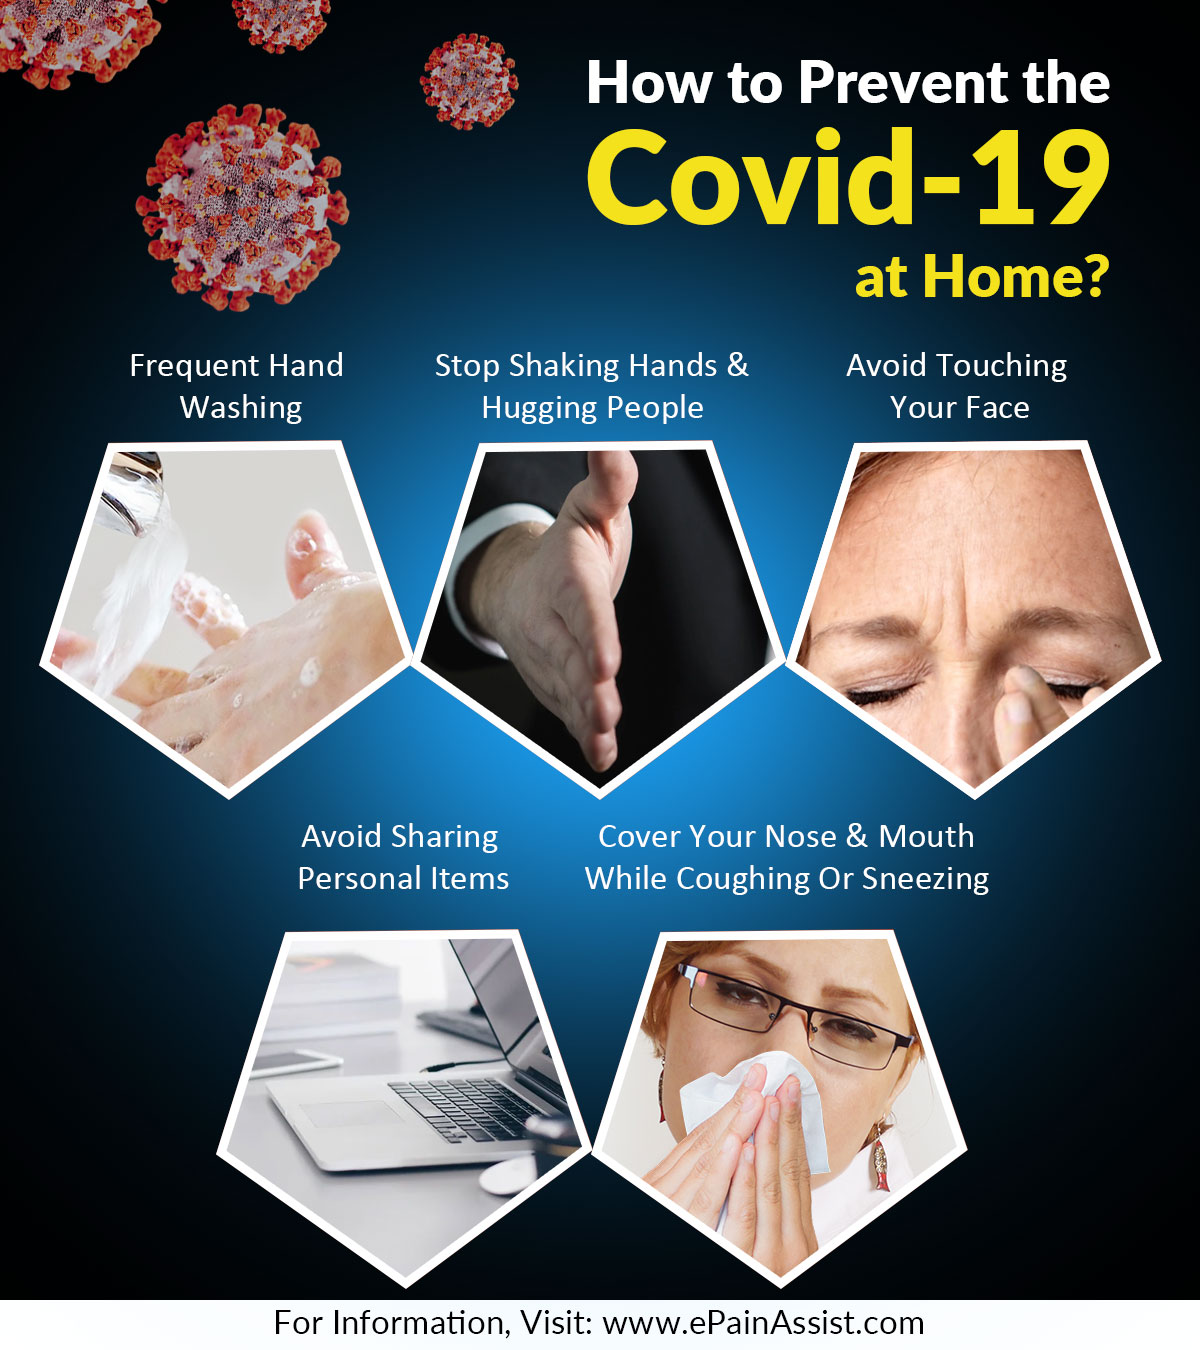 How to Prevent the Coronavirus Disease at Home?